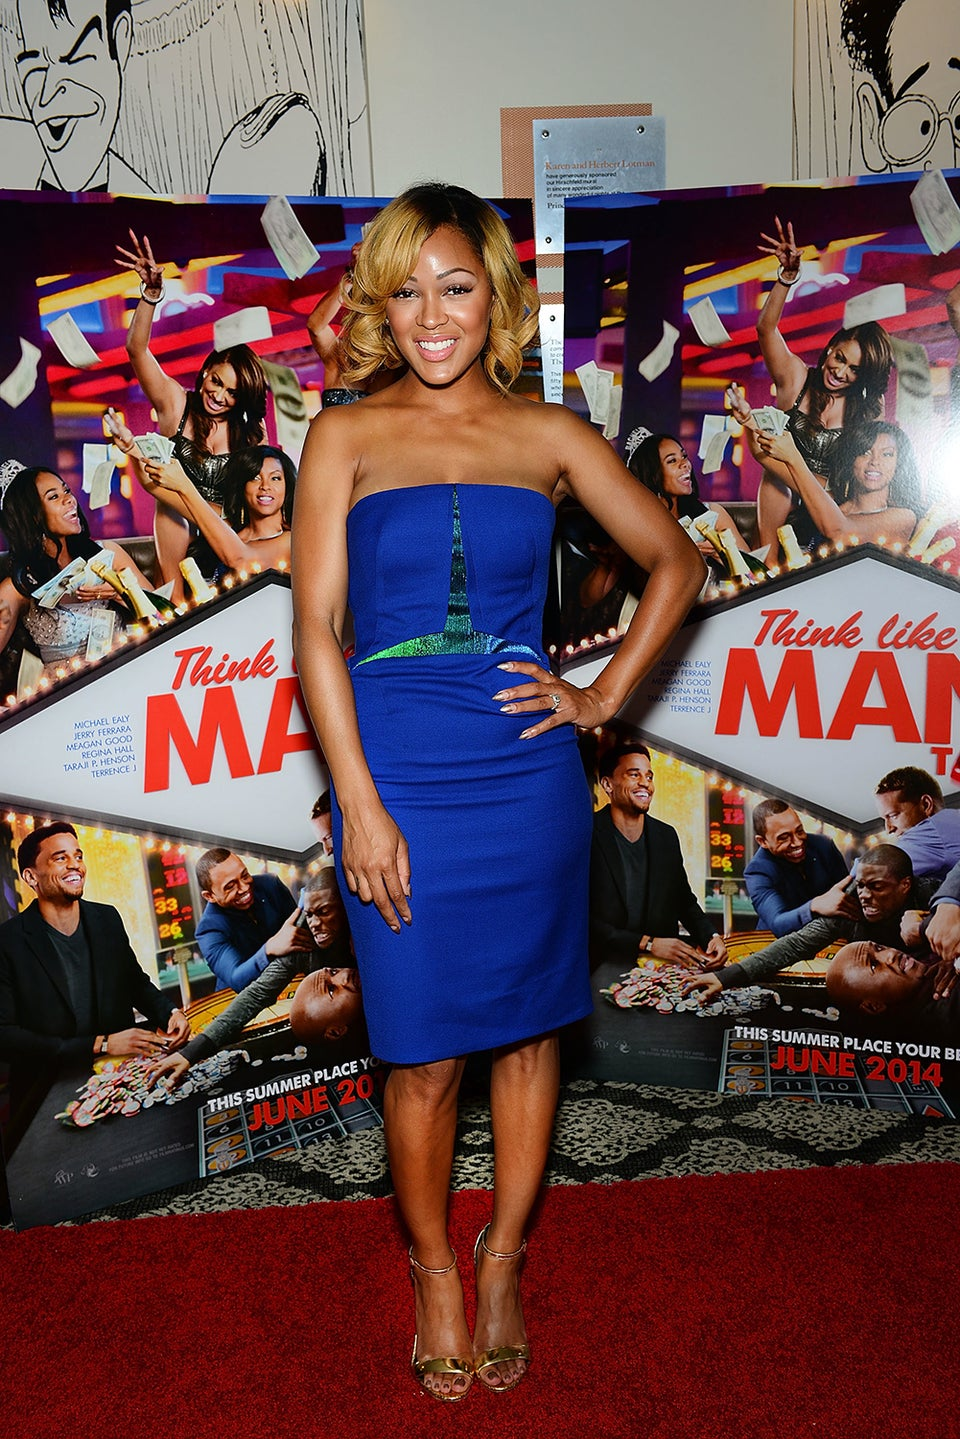 Meagan Good Dismisses Skin Bleaching Rumors, Says 'I Love My Complexion'